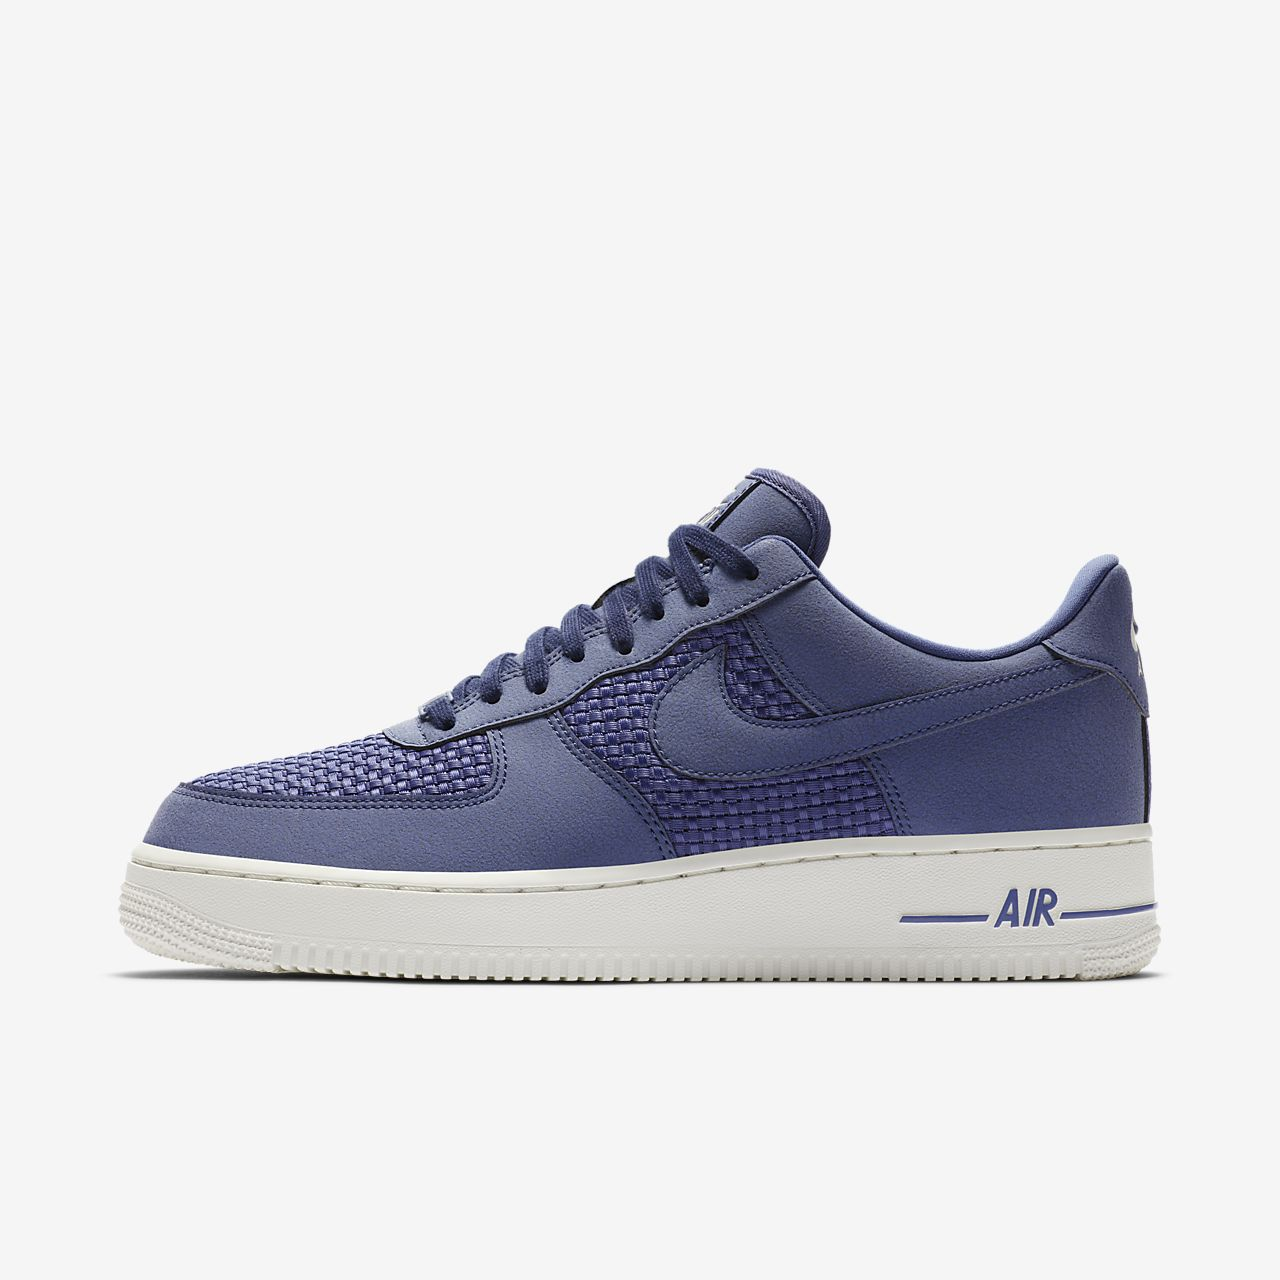 Chaussure Nike Nike Chaussure Air Force 1 Low Pour Lu a3e053